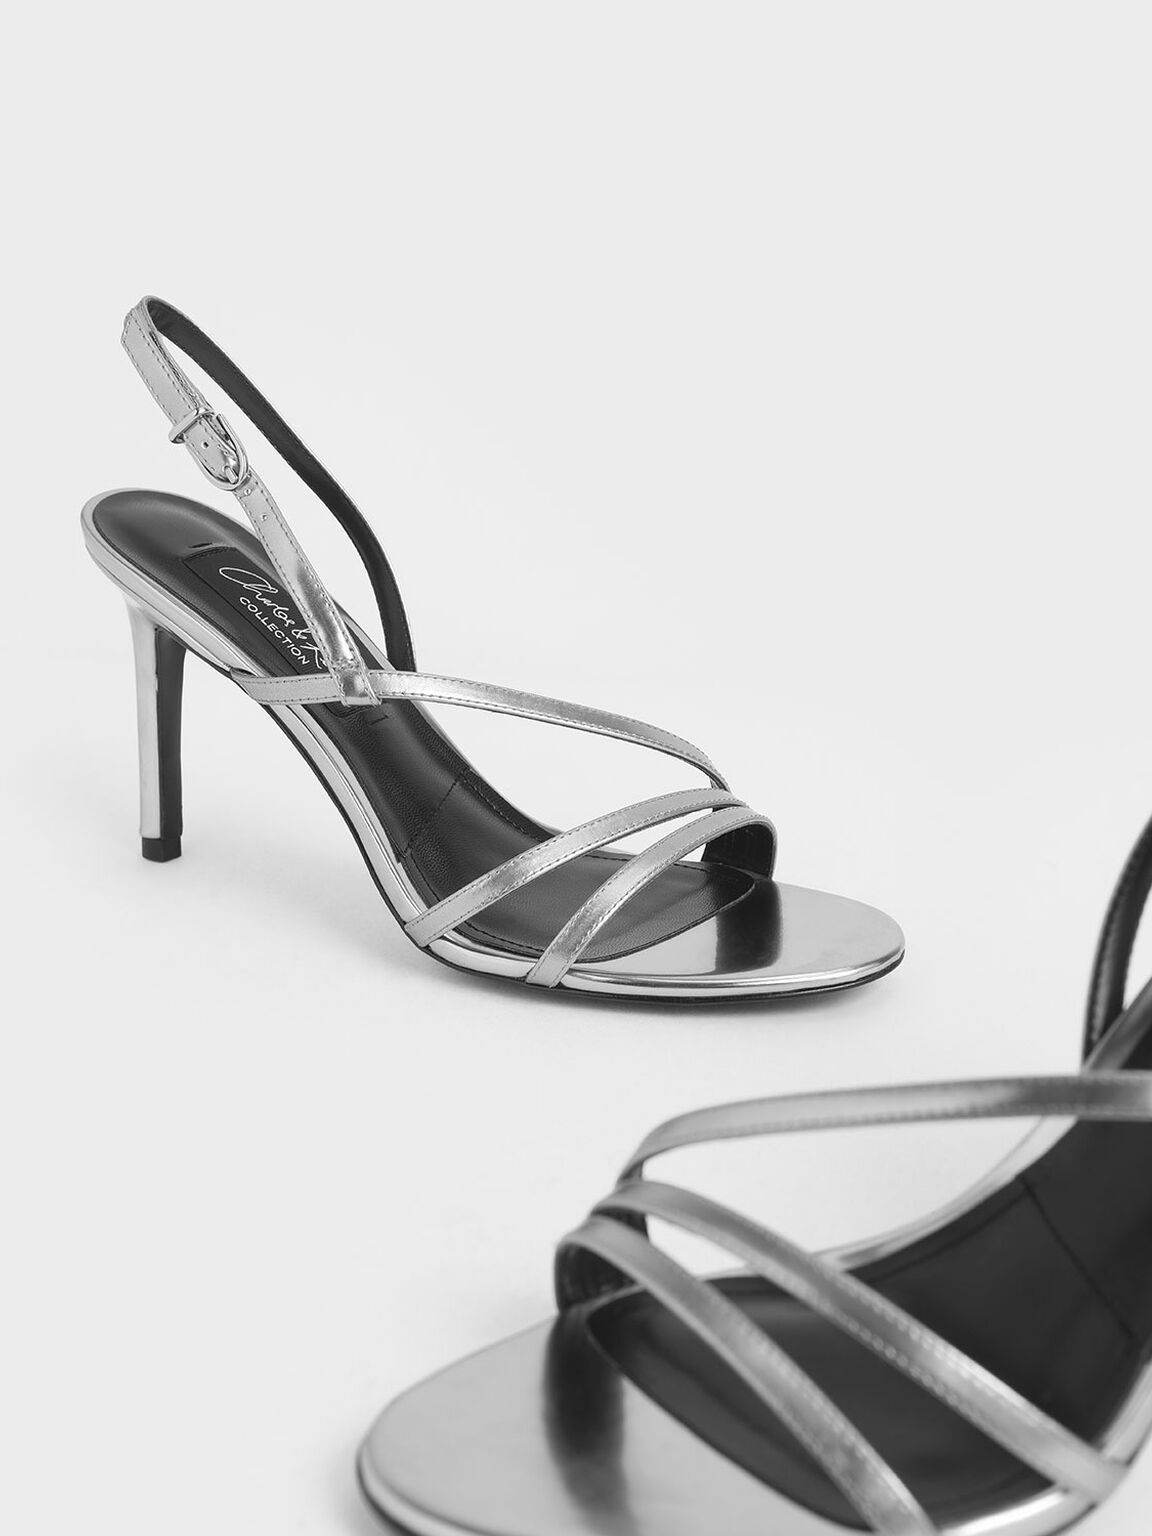 Mirror Metallic Leather Strappy Heeled Sandals, Silver, hi-res